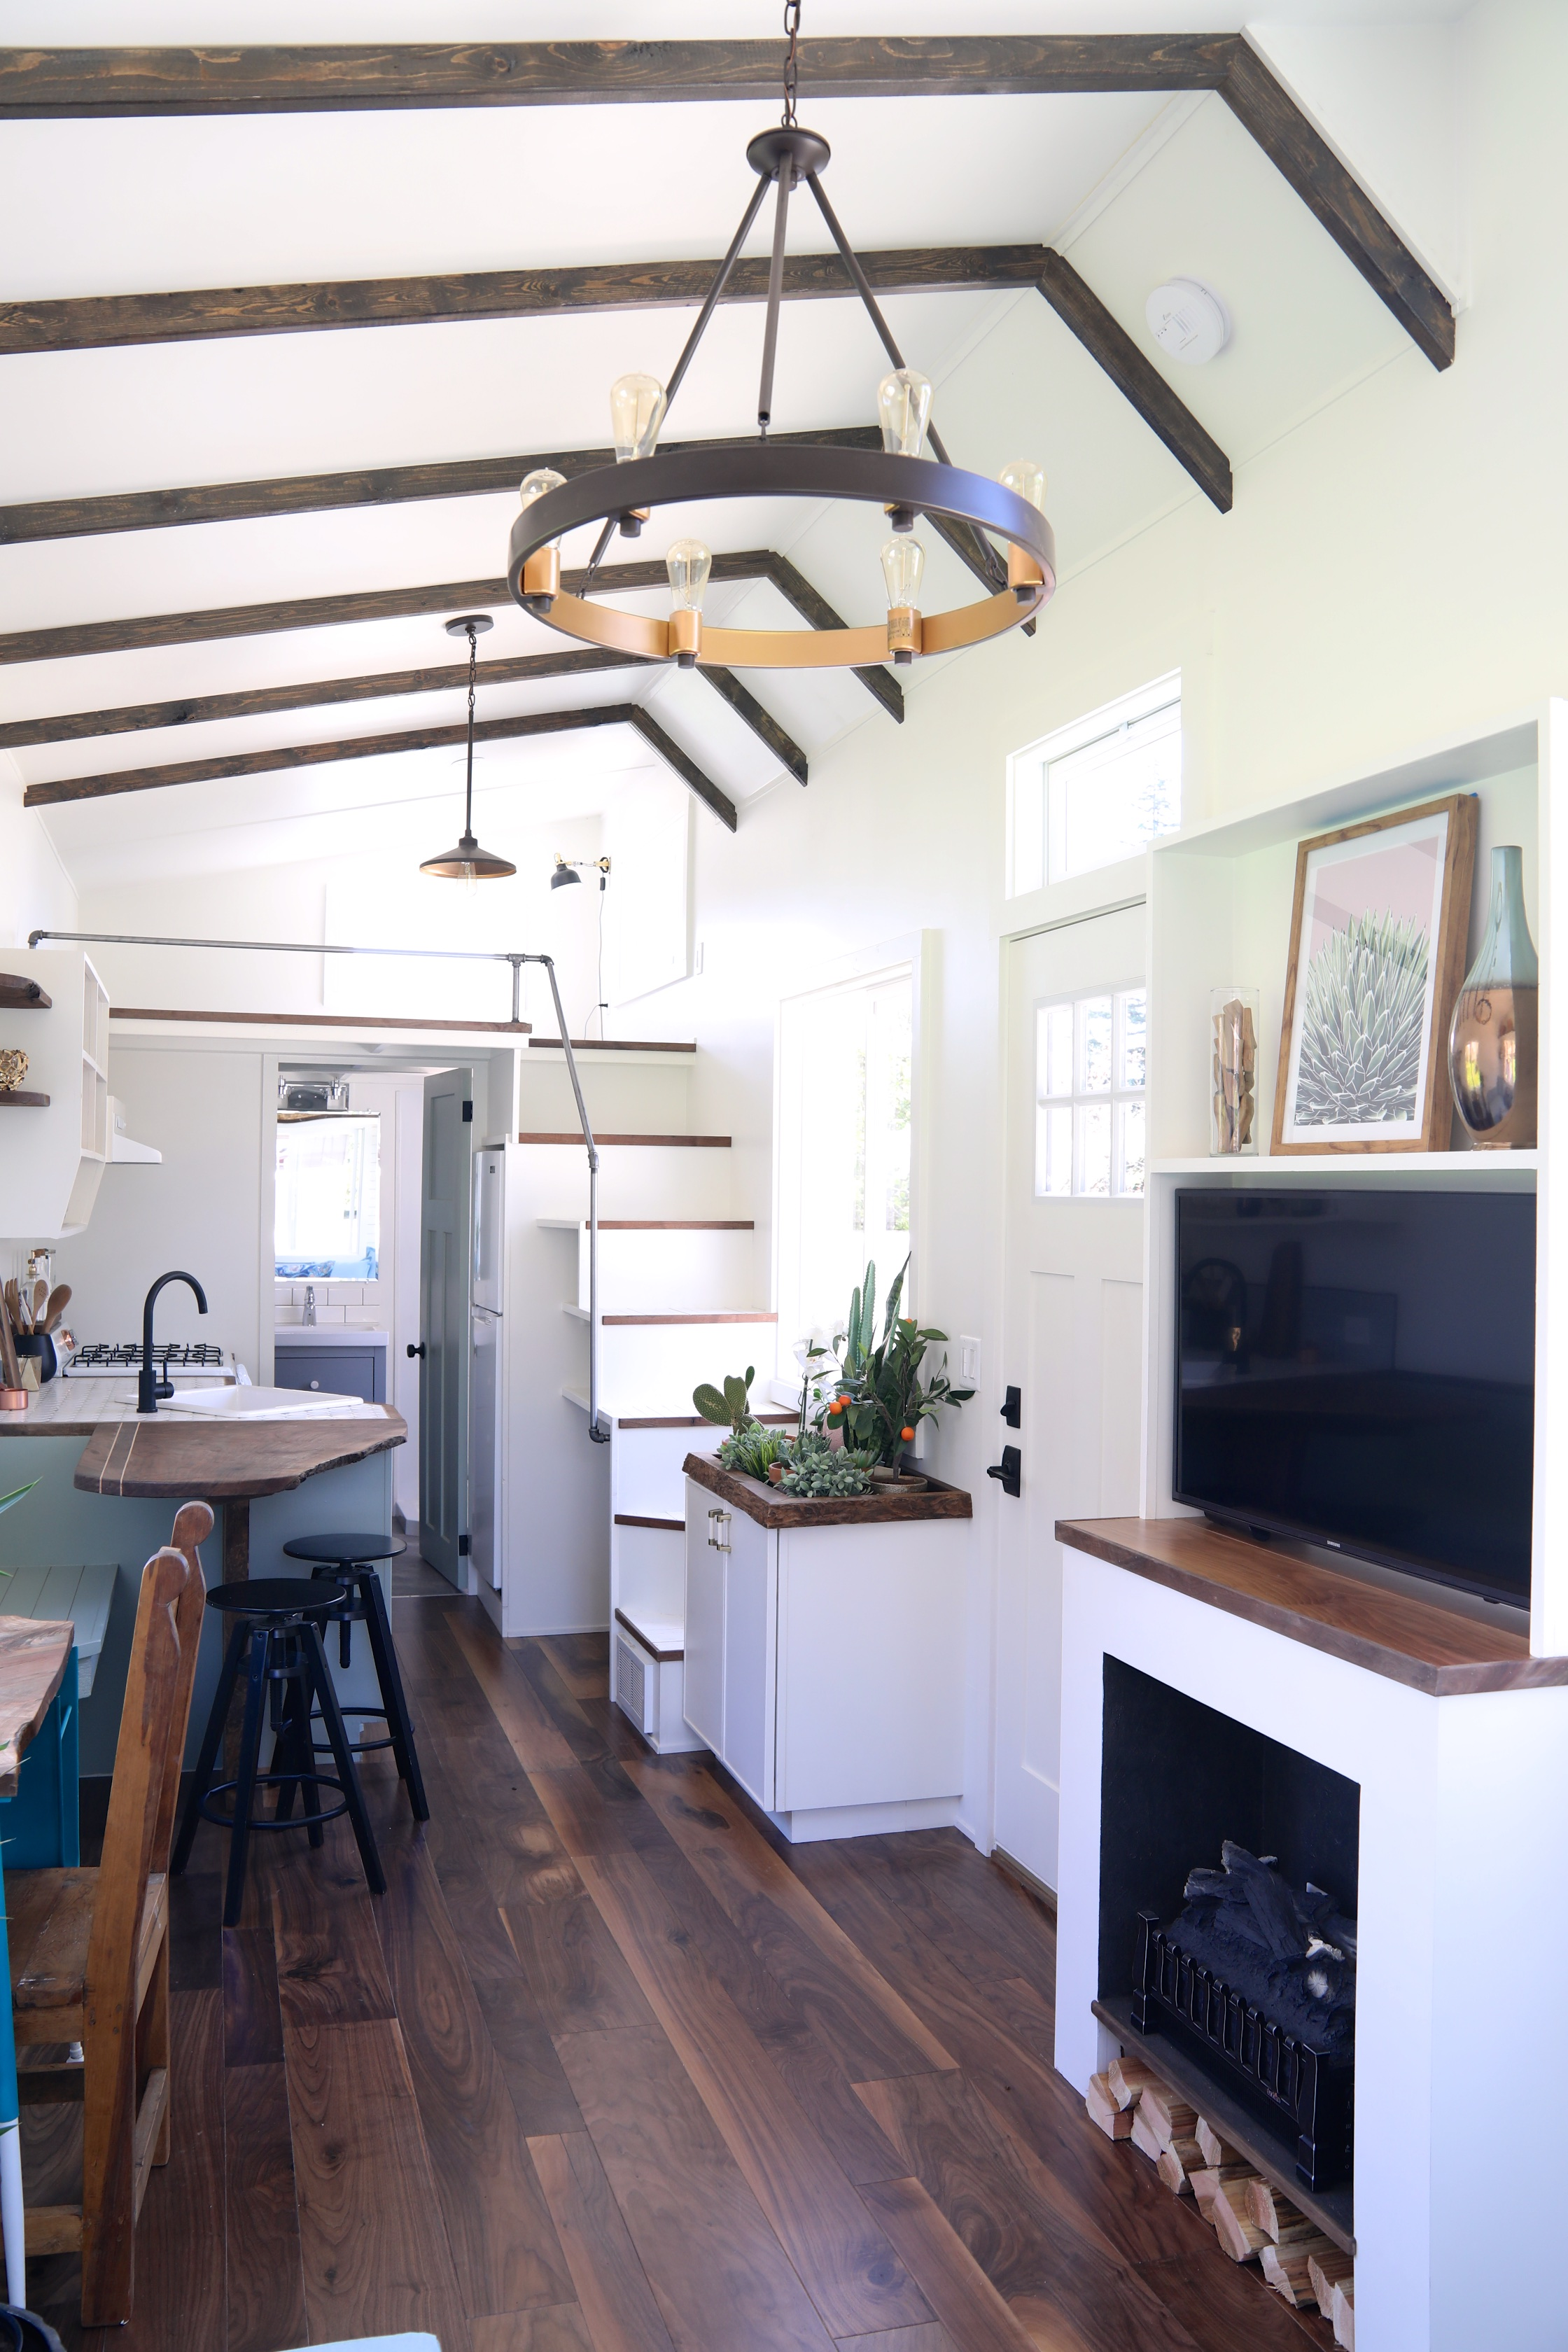 Royal Harmony Tiny Home by Handcrafted Movement